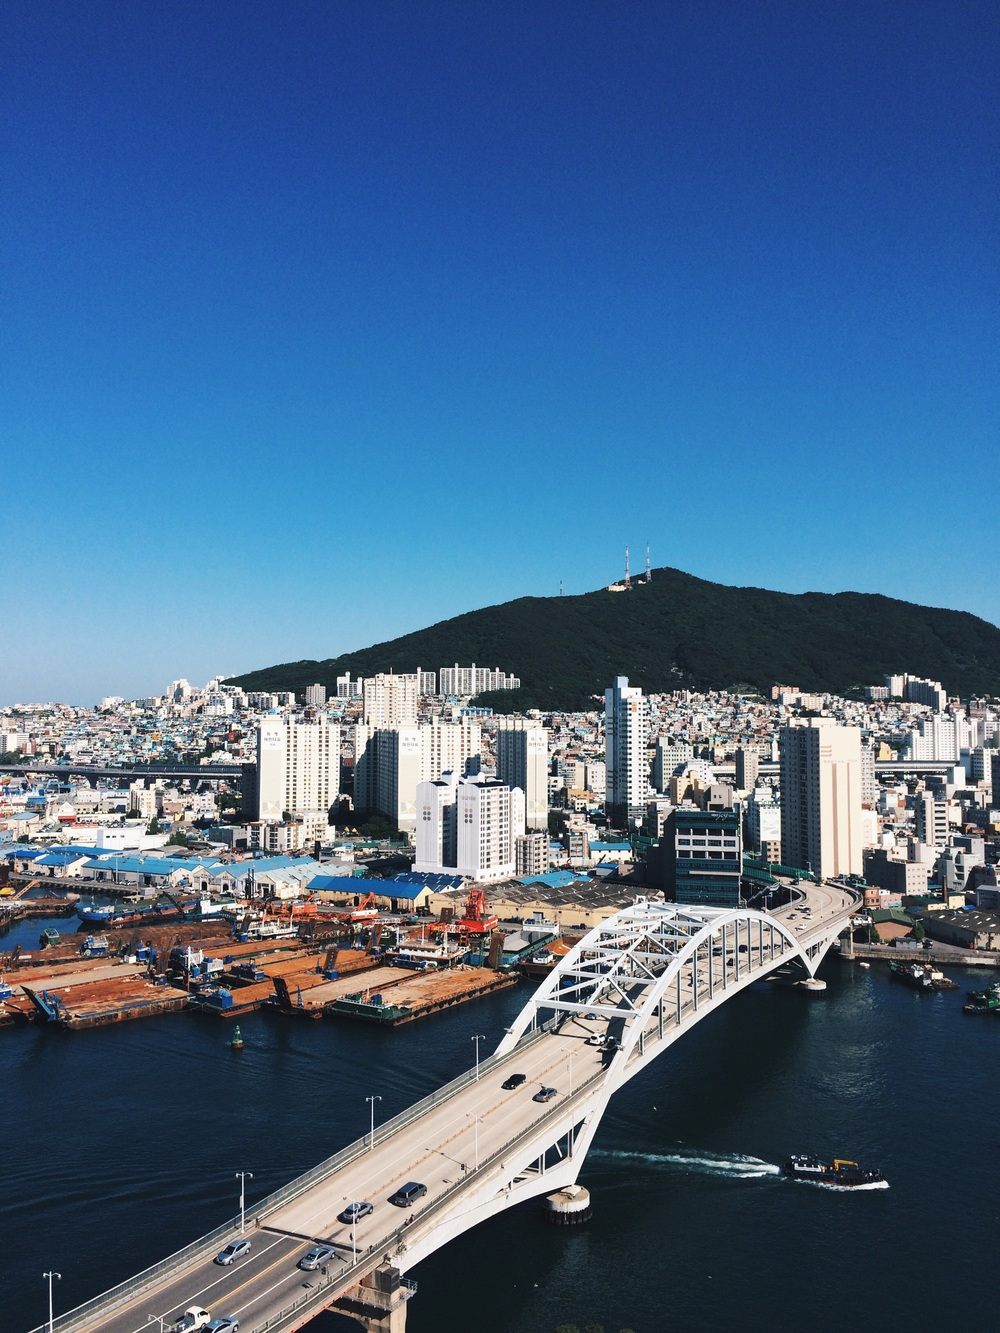 City view of Busan - sea, bridges, hills and more...